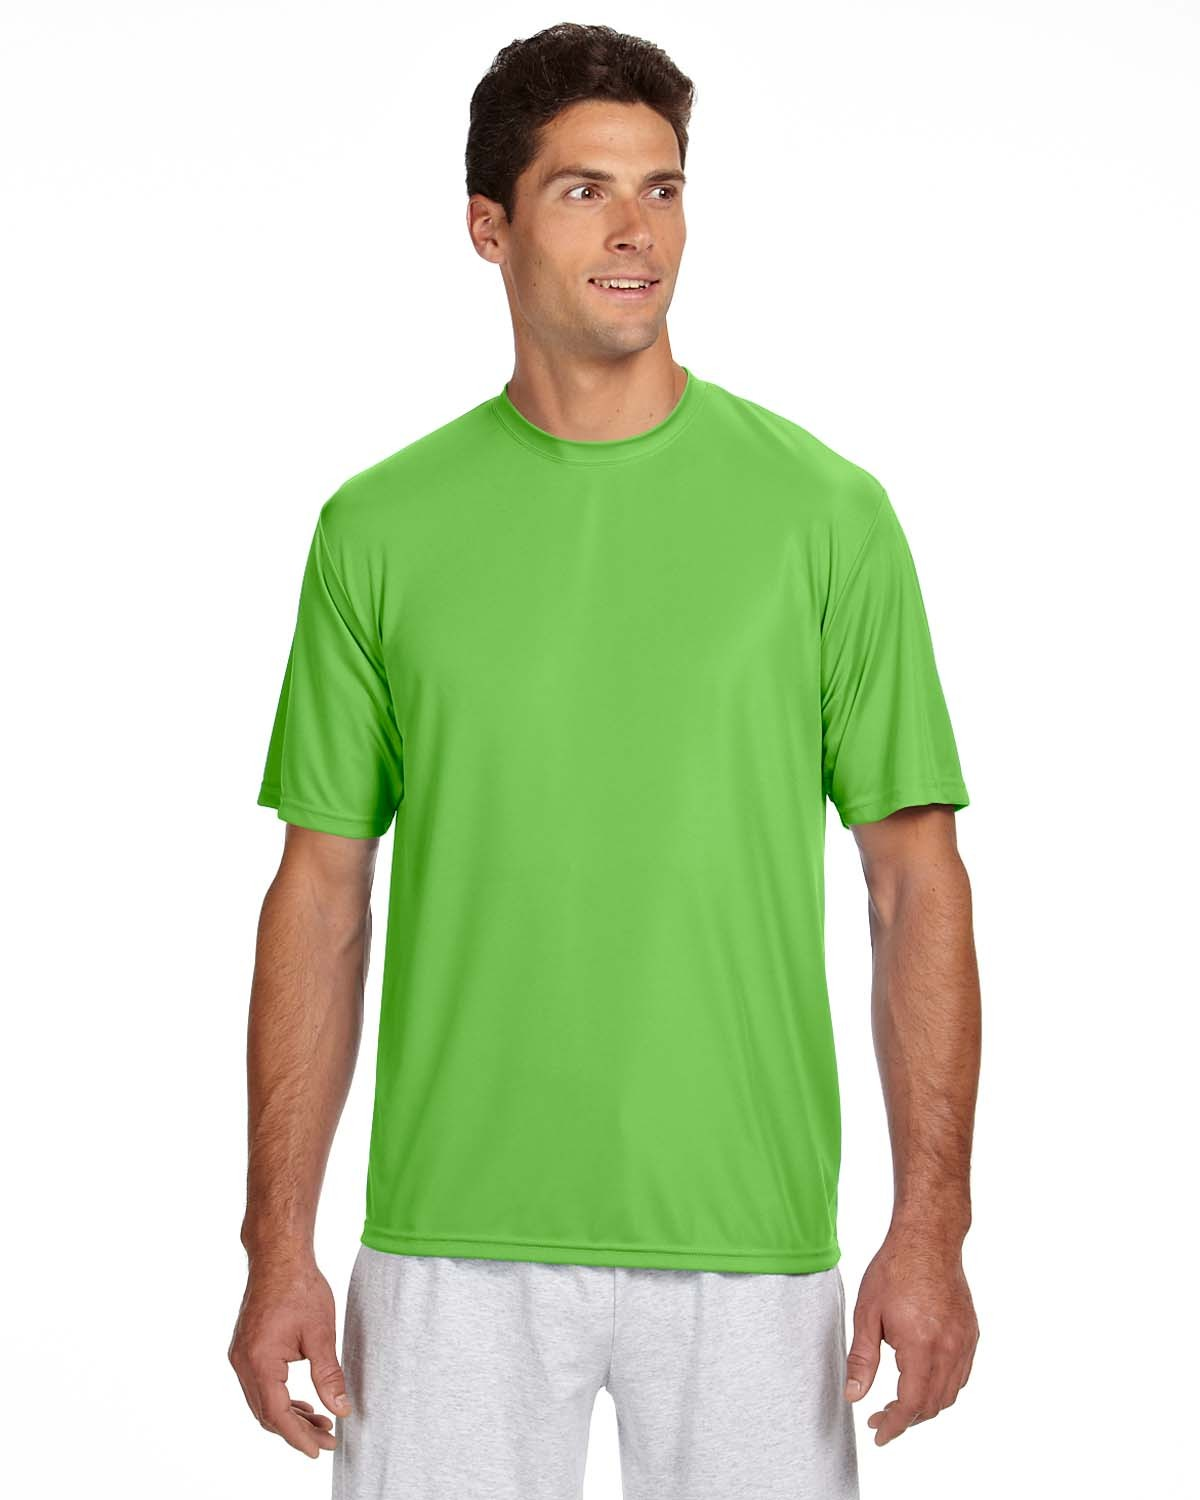 N3142 A4 Apparel LIME